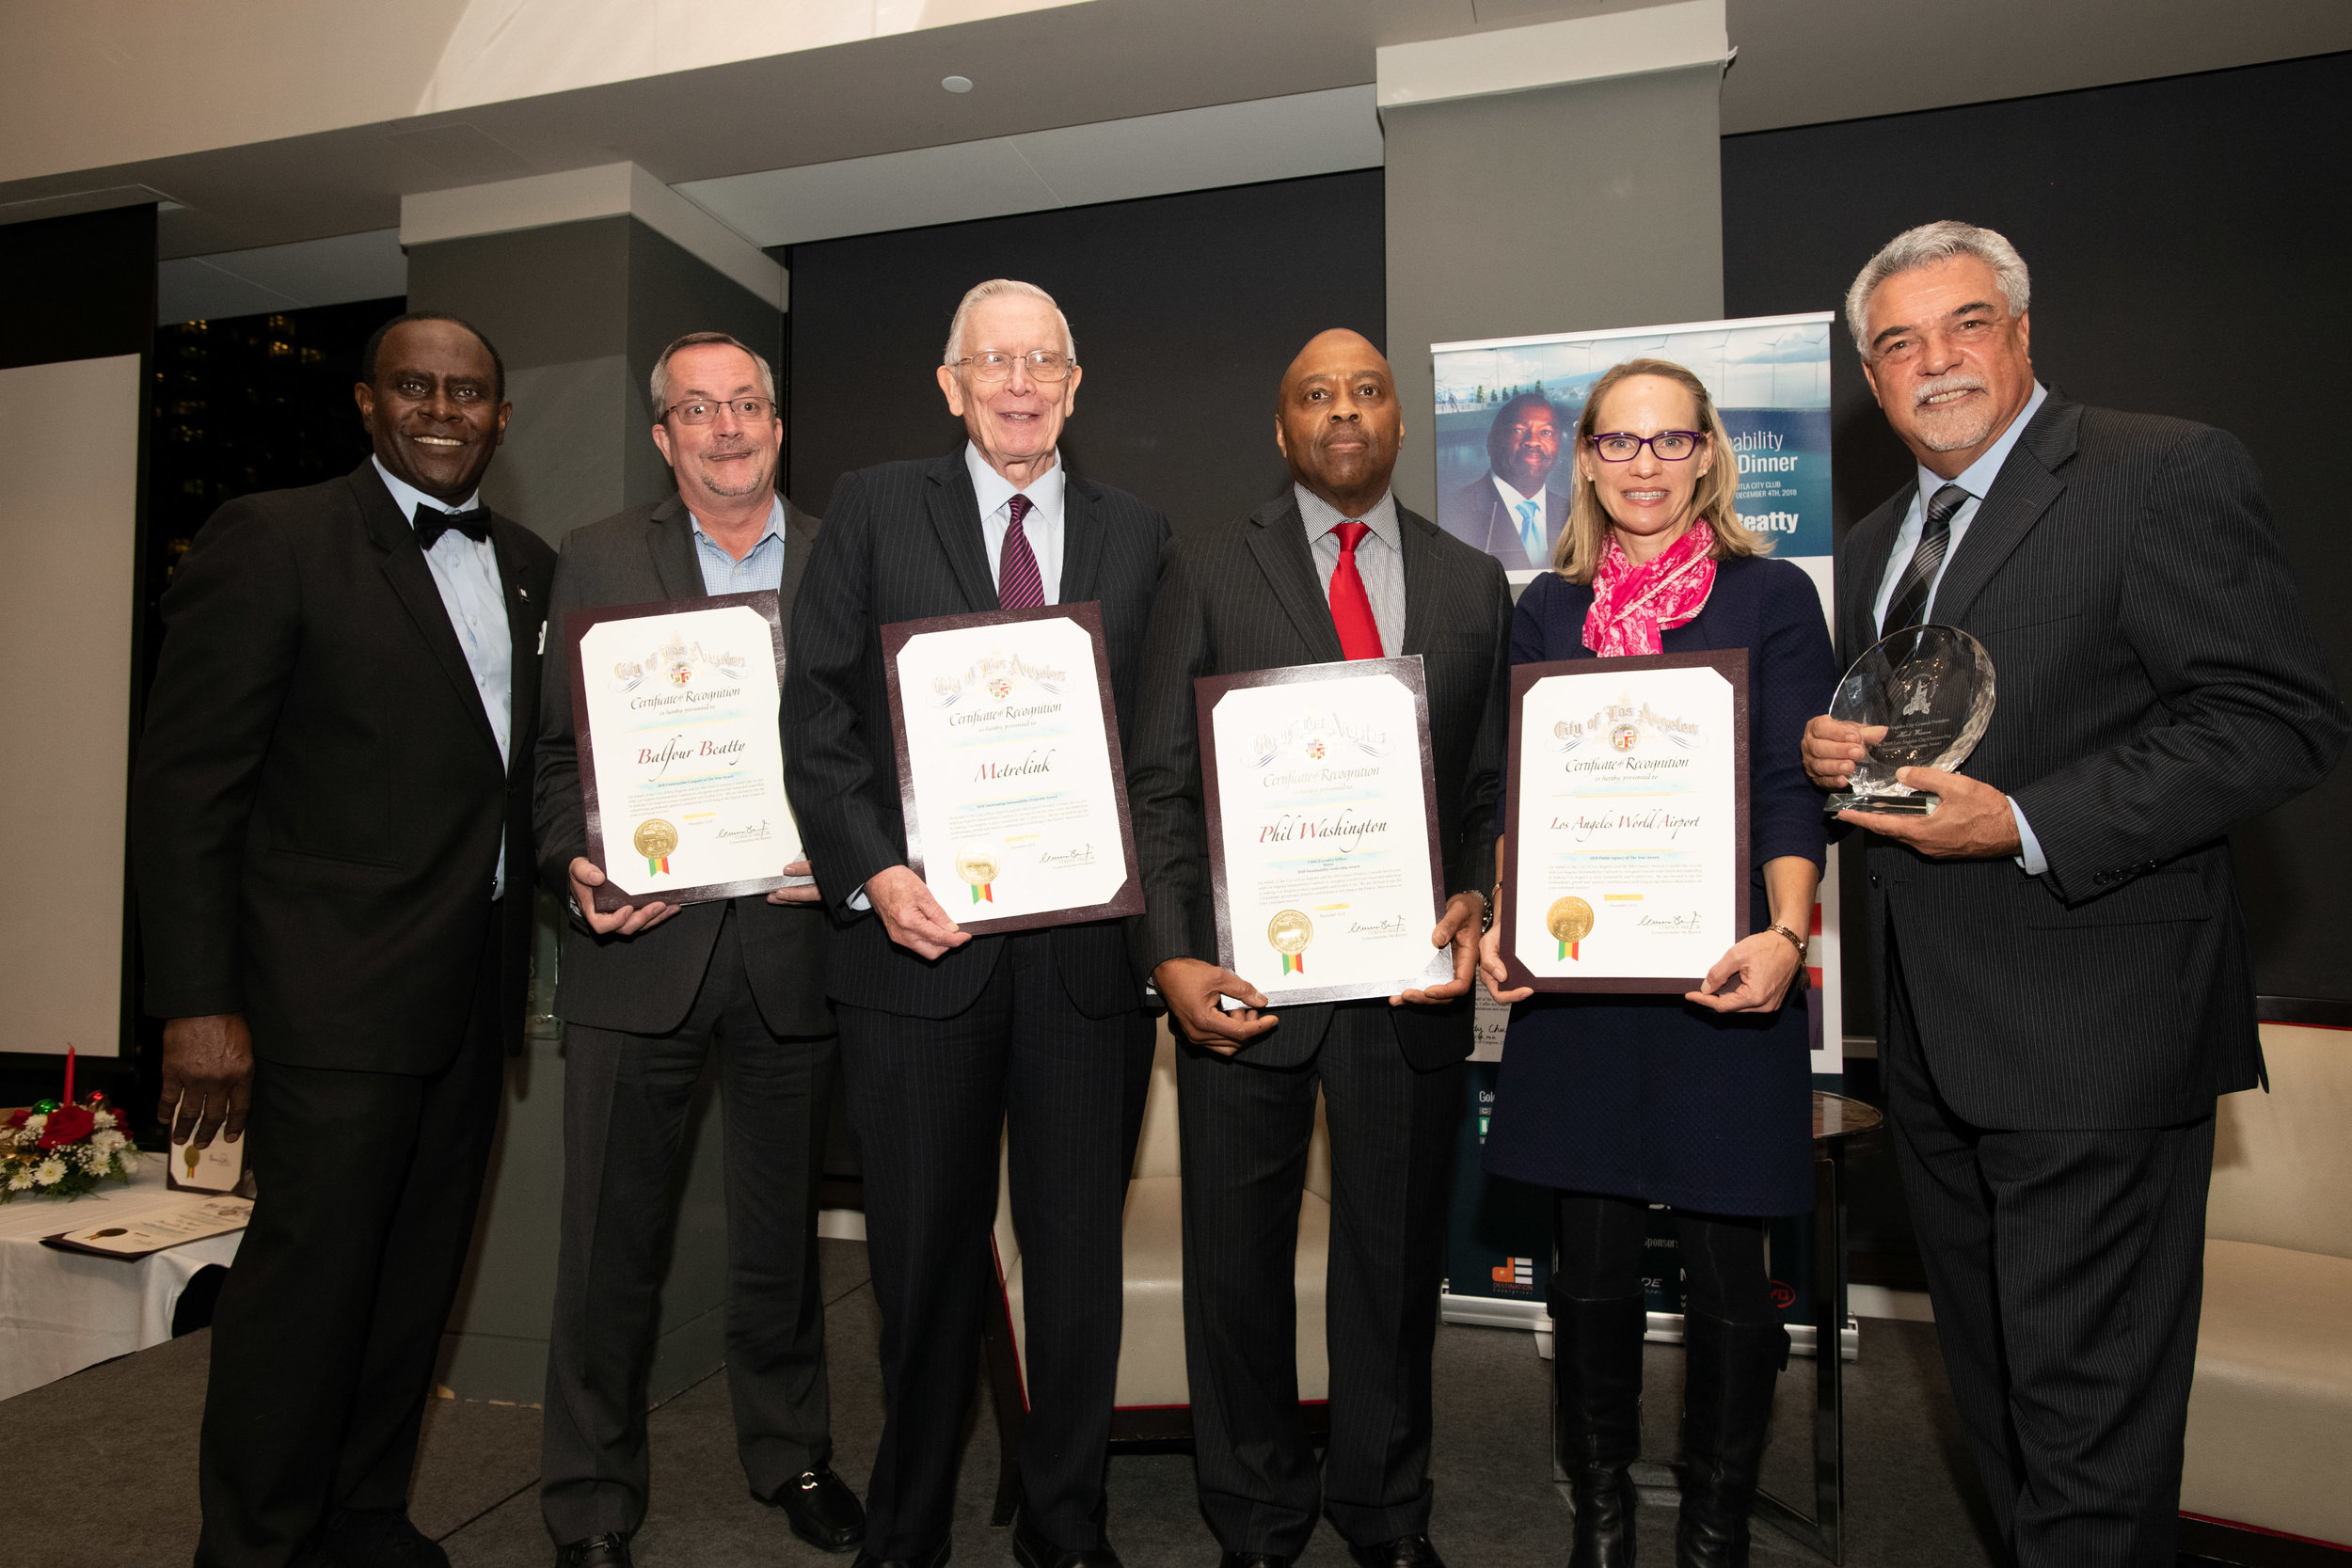 L-R Dr. Sherman Gay (LASC), Joe Reed (Vice President, Balfour Beatty, 2018 Construction Company of the Year Award), Larry McCallon (Mayor of Highland, 2018 Metro Outstanding Sustainability Program Award), Phil Washington (Metro Chief Executive Officer, 2018 Sustainability Leadership Award (Man of the Night)), Tamara McCrossen-Orr (Chief Planning Officer LA World Airports, 2018 Sustainability Public Agency of the Year Award), Albert Lord (Deputy, Los Angeles Council President Herb Wesson Jr. 2018 Los Angeles City Outstanding Sustainability Program Award)